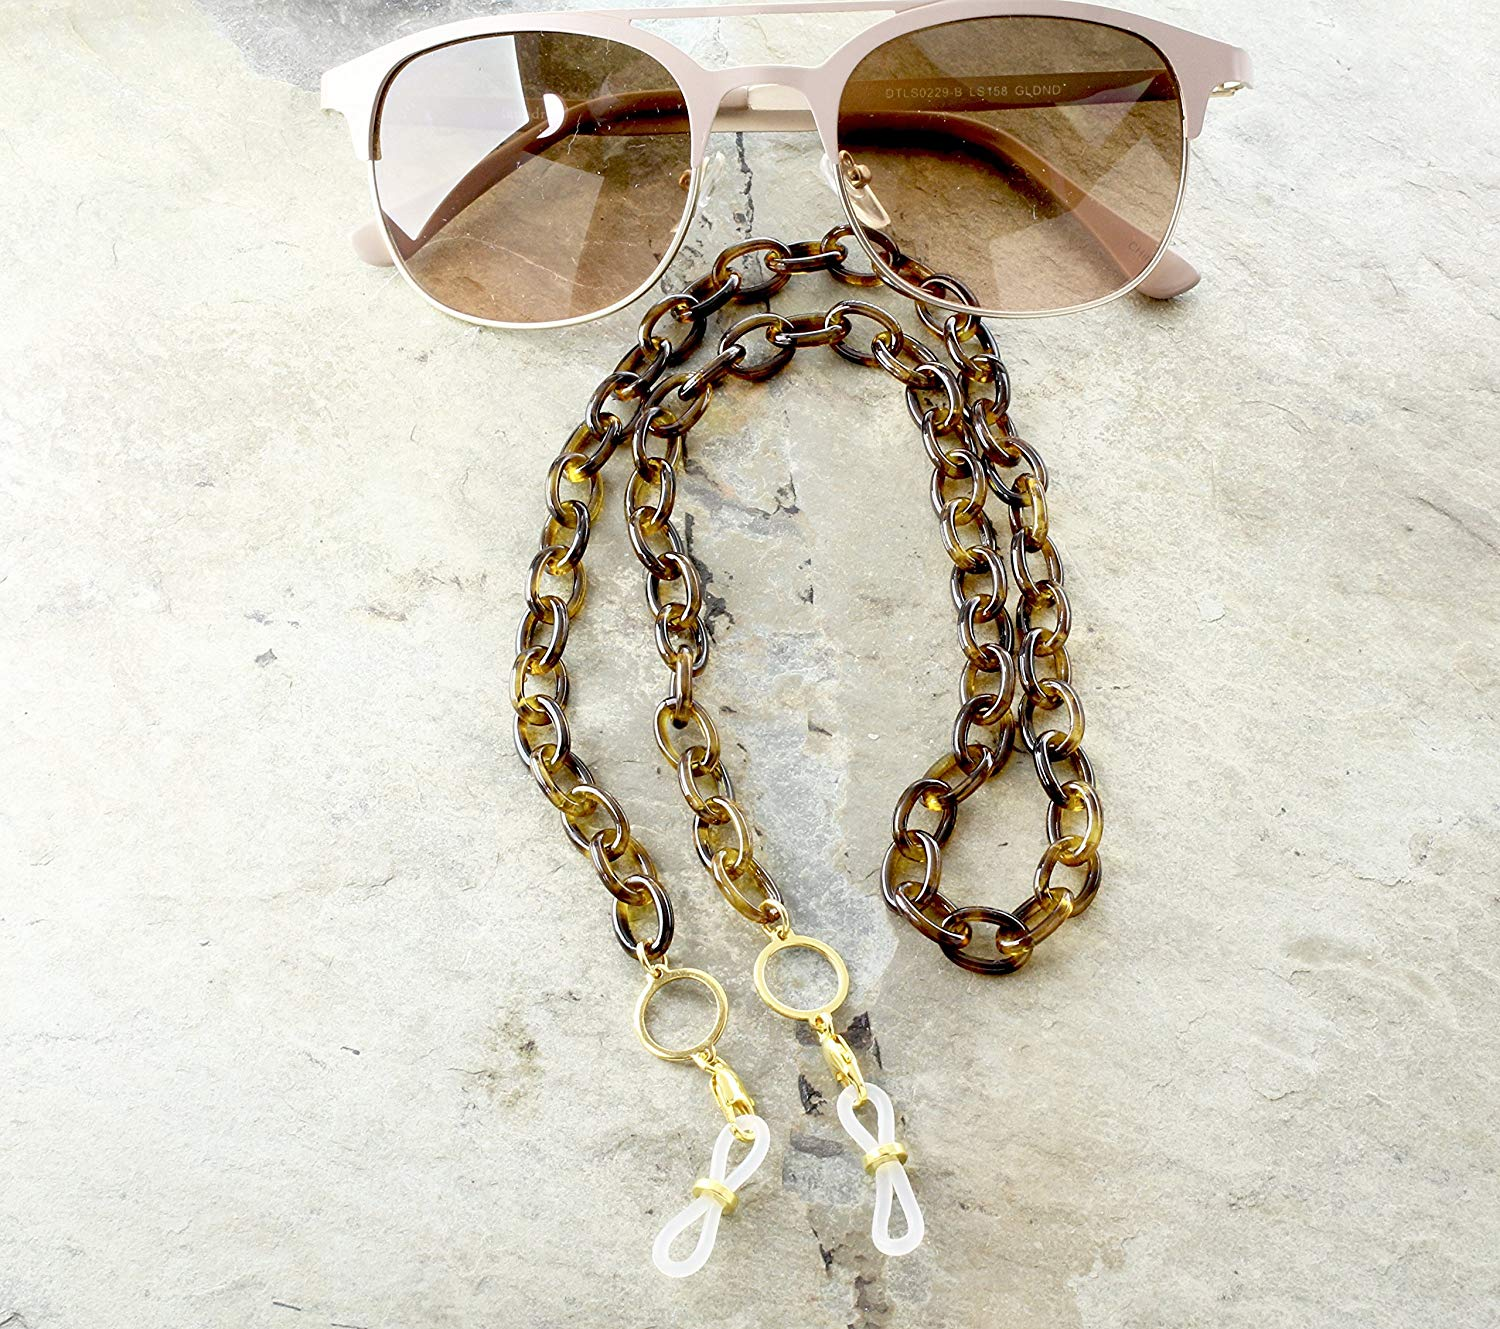 4770f8fc85 Get Quotations · Tortoise Shell Eyeglass Chain with Gold Reading Glasses  Holder Chain